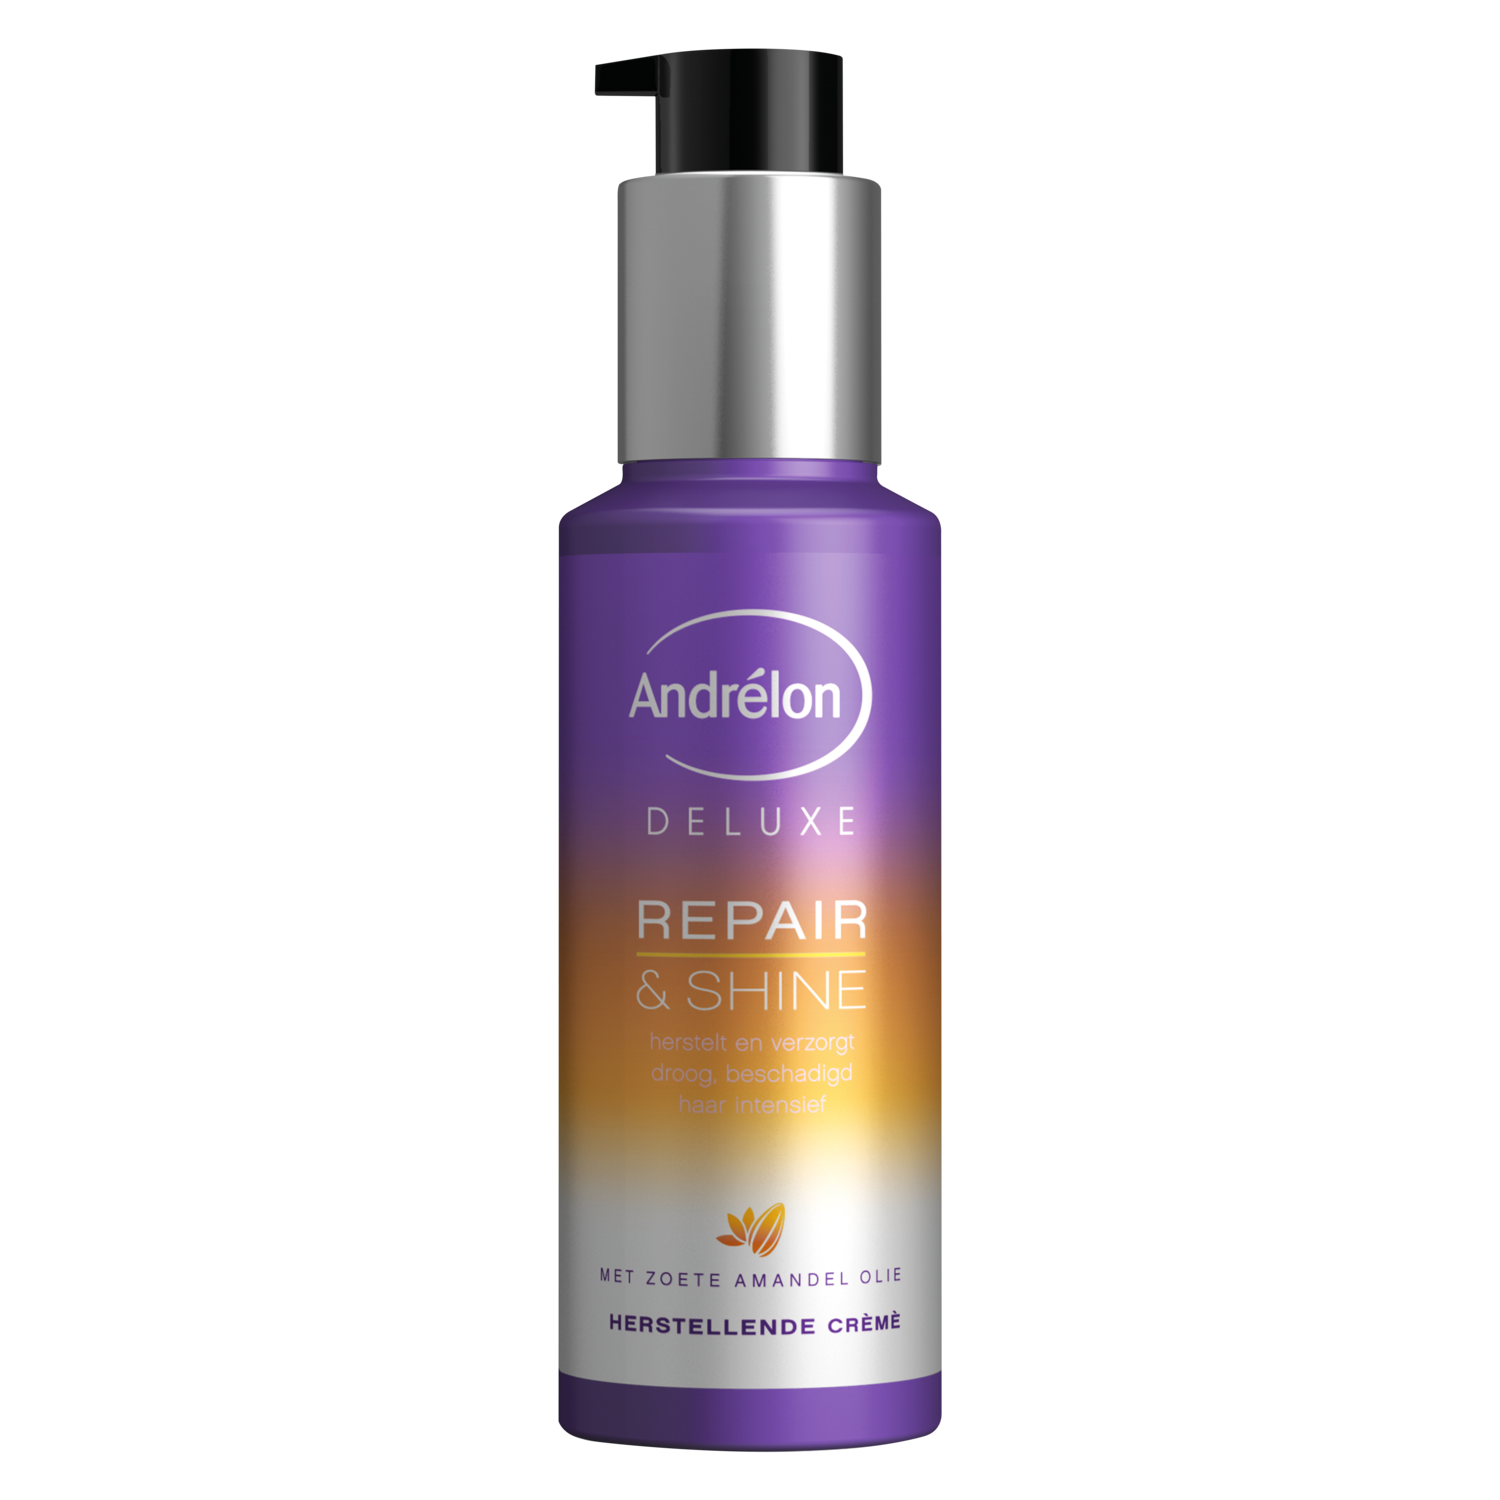 Andrelon Deluxe Repair and Shine Haarcreme